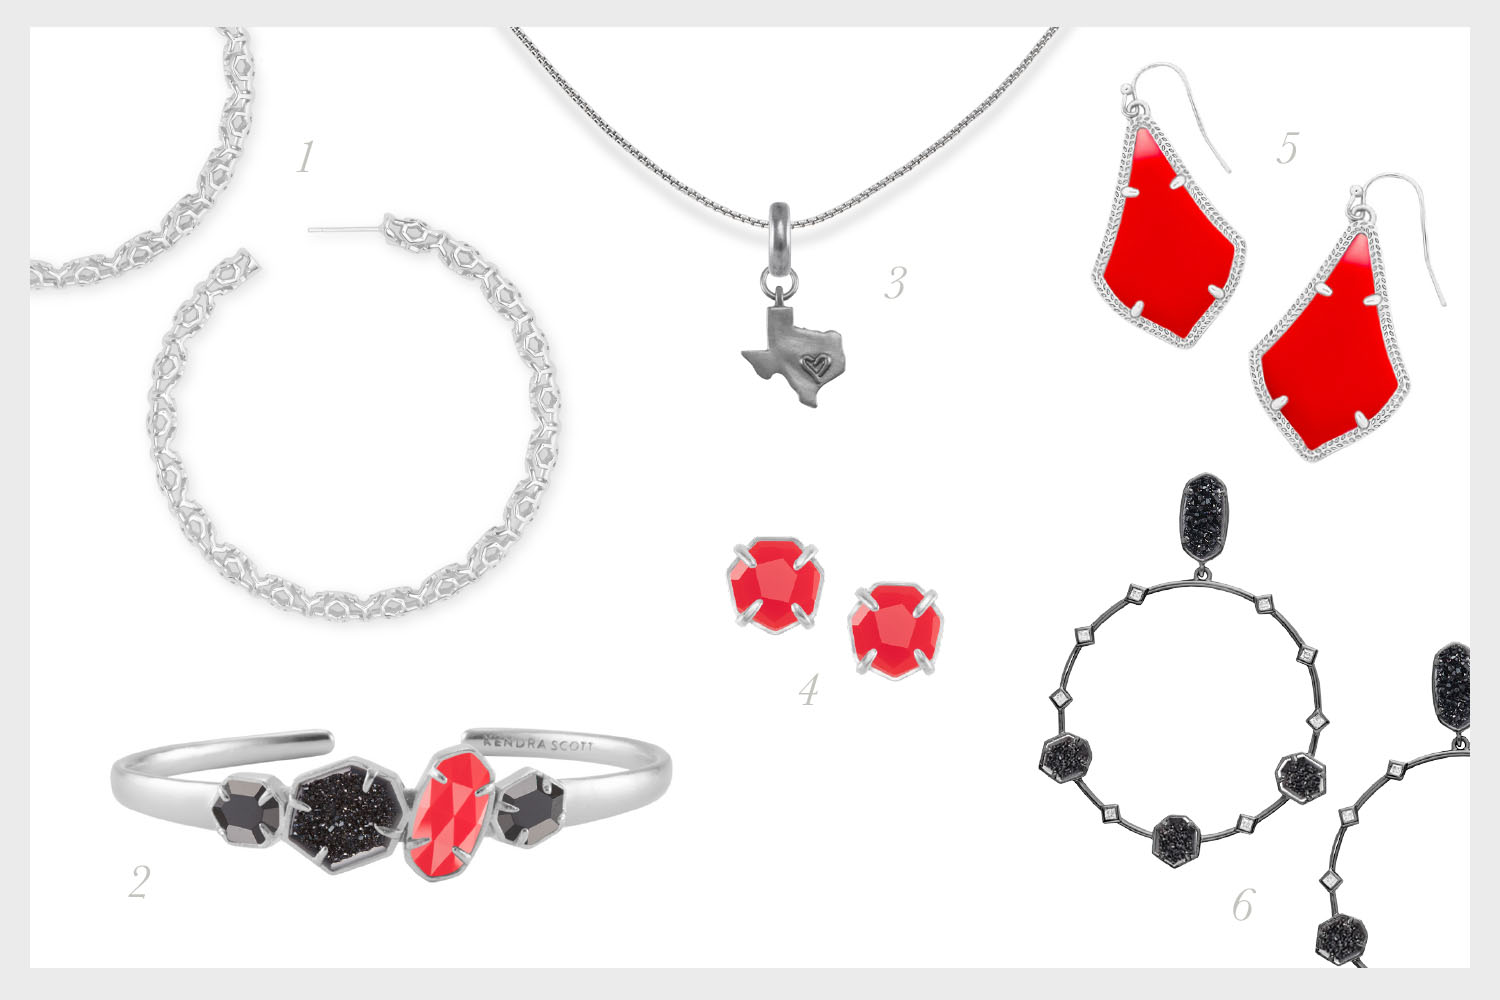 1.   Maggie Hoop Earrings in Silver Filigree   2.   Ruby Silver Cuff Bracelet in Black, Black Drusy, & Bright Red   ,  3.   State of Texas Charm with Thin Adjustable Chain Necklace in Vintage Silver   4.   Ryan Silver Stud Earrings in Bright Red   5.   Alex Silver Drop Earrings in Bright Red   6.   Sheila Gunmetal Earrings in Black Drusy